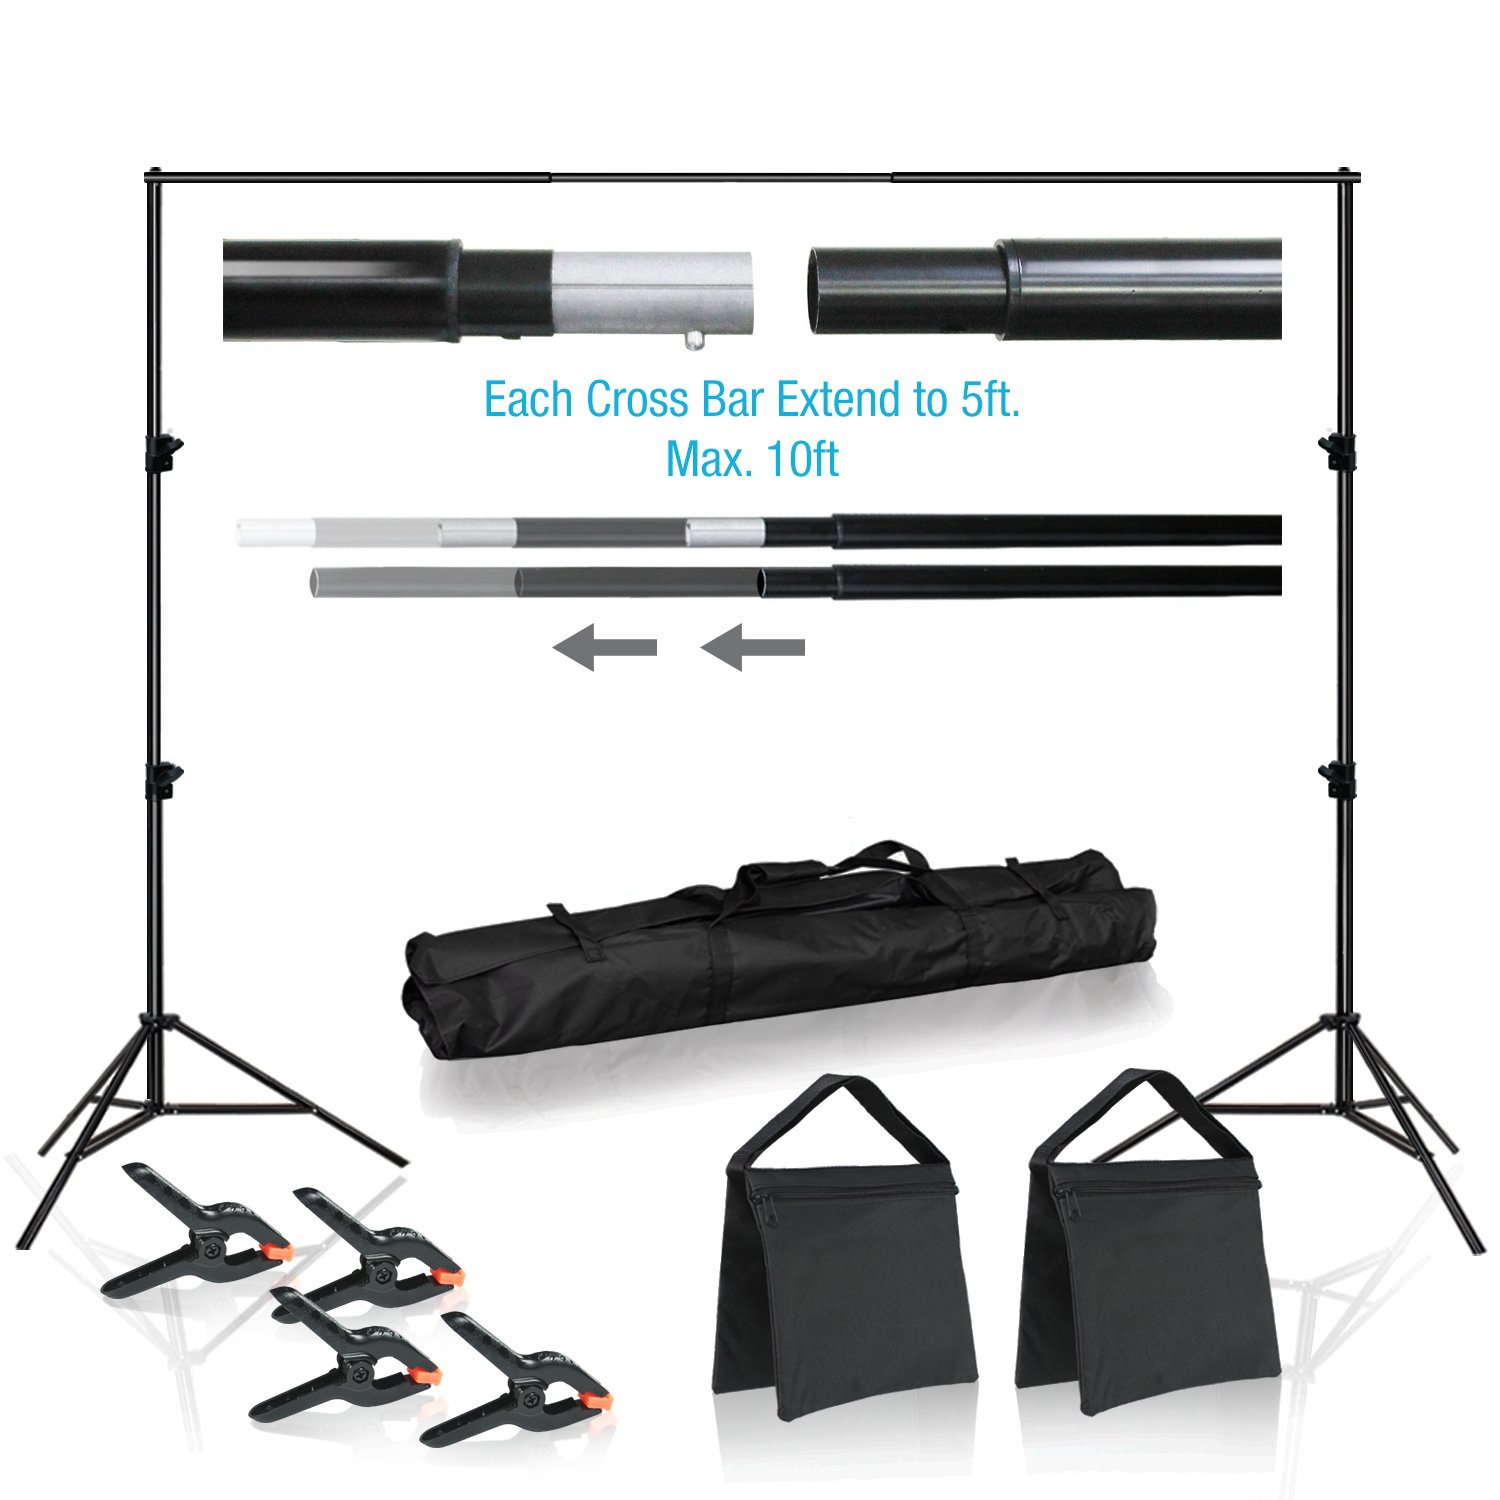 Lusana Studio 10 feet Wide Backdrop Support Stand Cross Bar Kit with Spring Clamp and Counter Weight Sand Bag for Stablizing Structure, Photo Video Studio Setting, LNA1018 by Lusana Studio